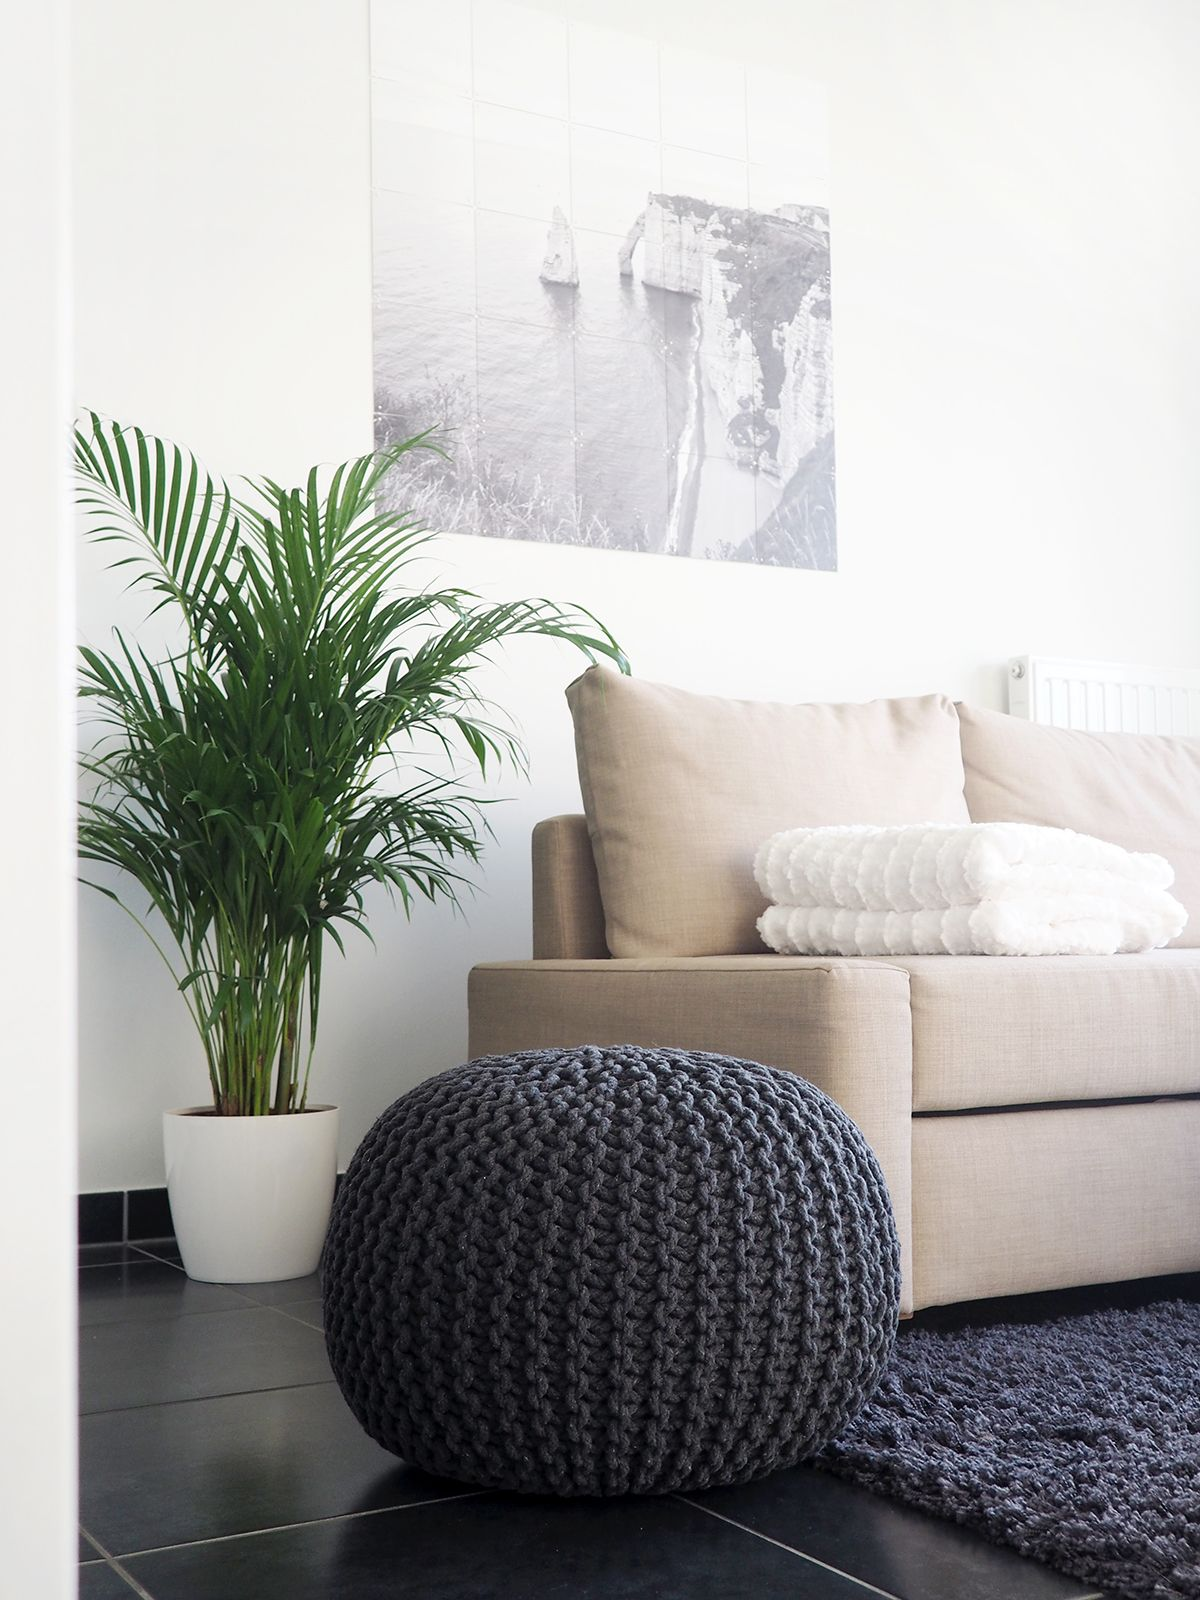 Minimal & cosy living room details. | www.yourddofme.be